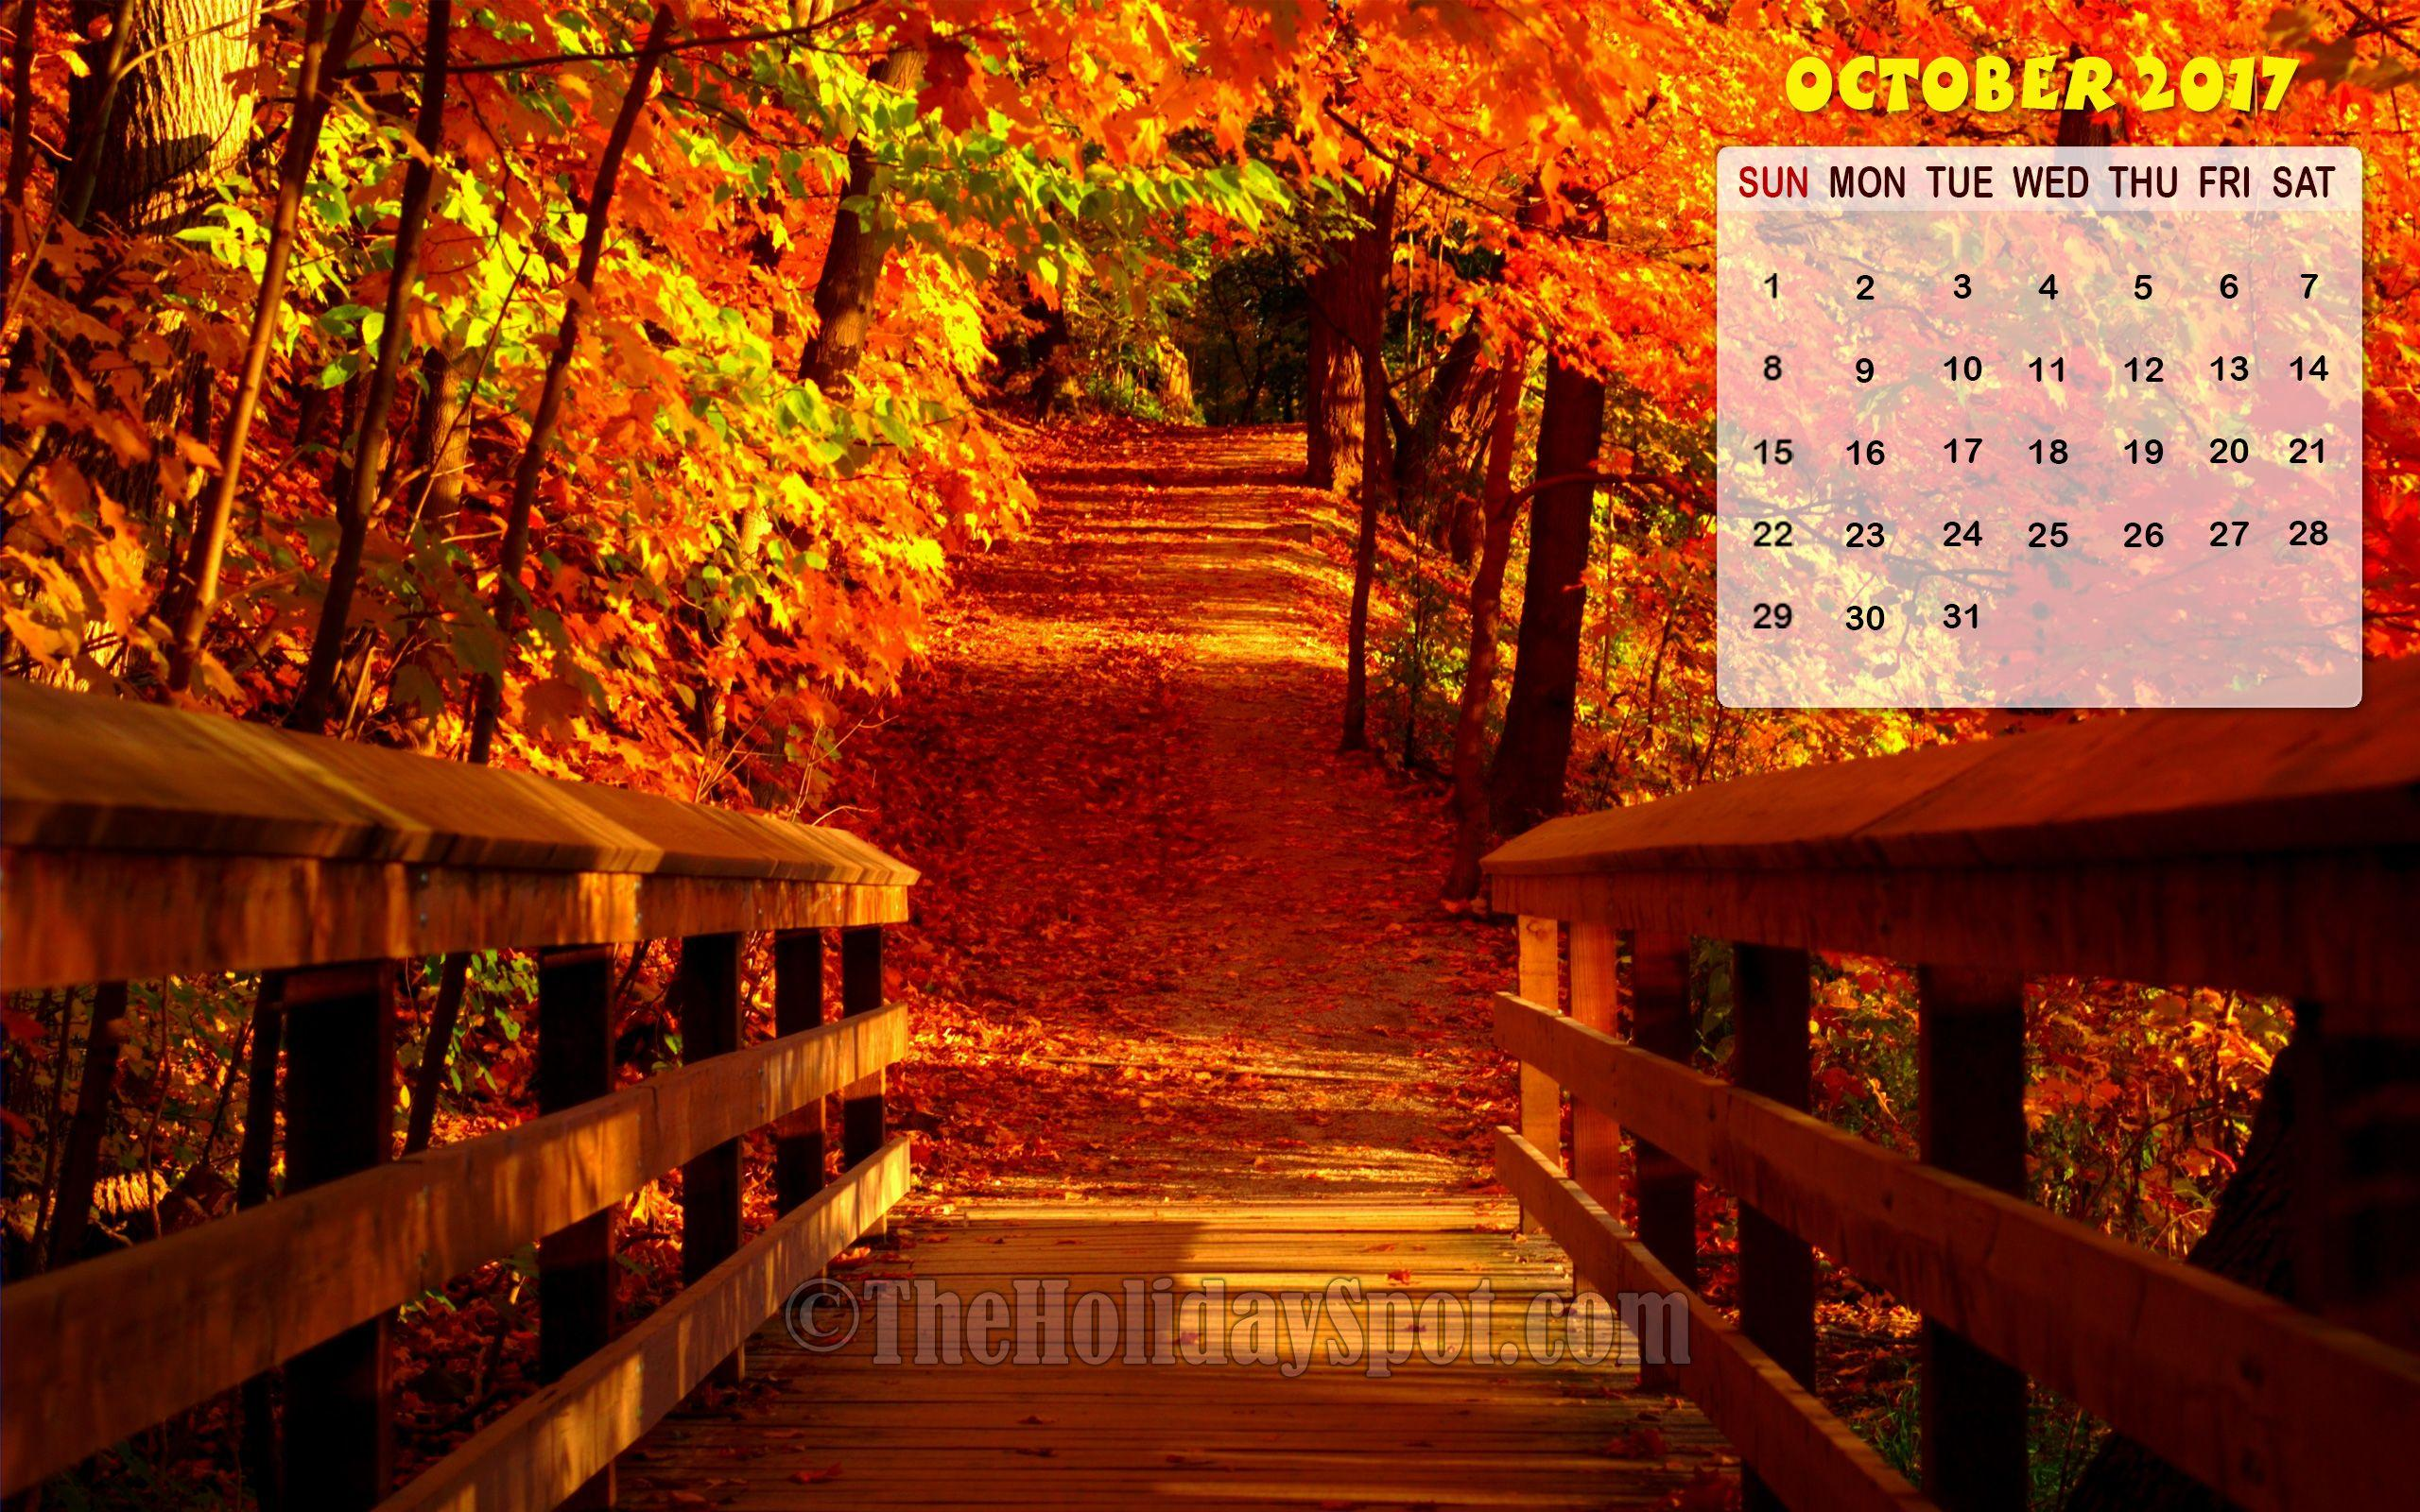 Month wise Calendar Wallpapers of 2017